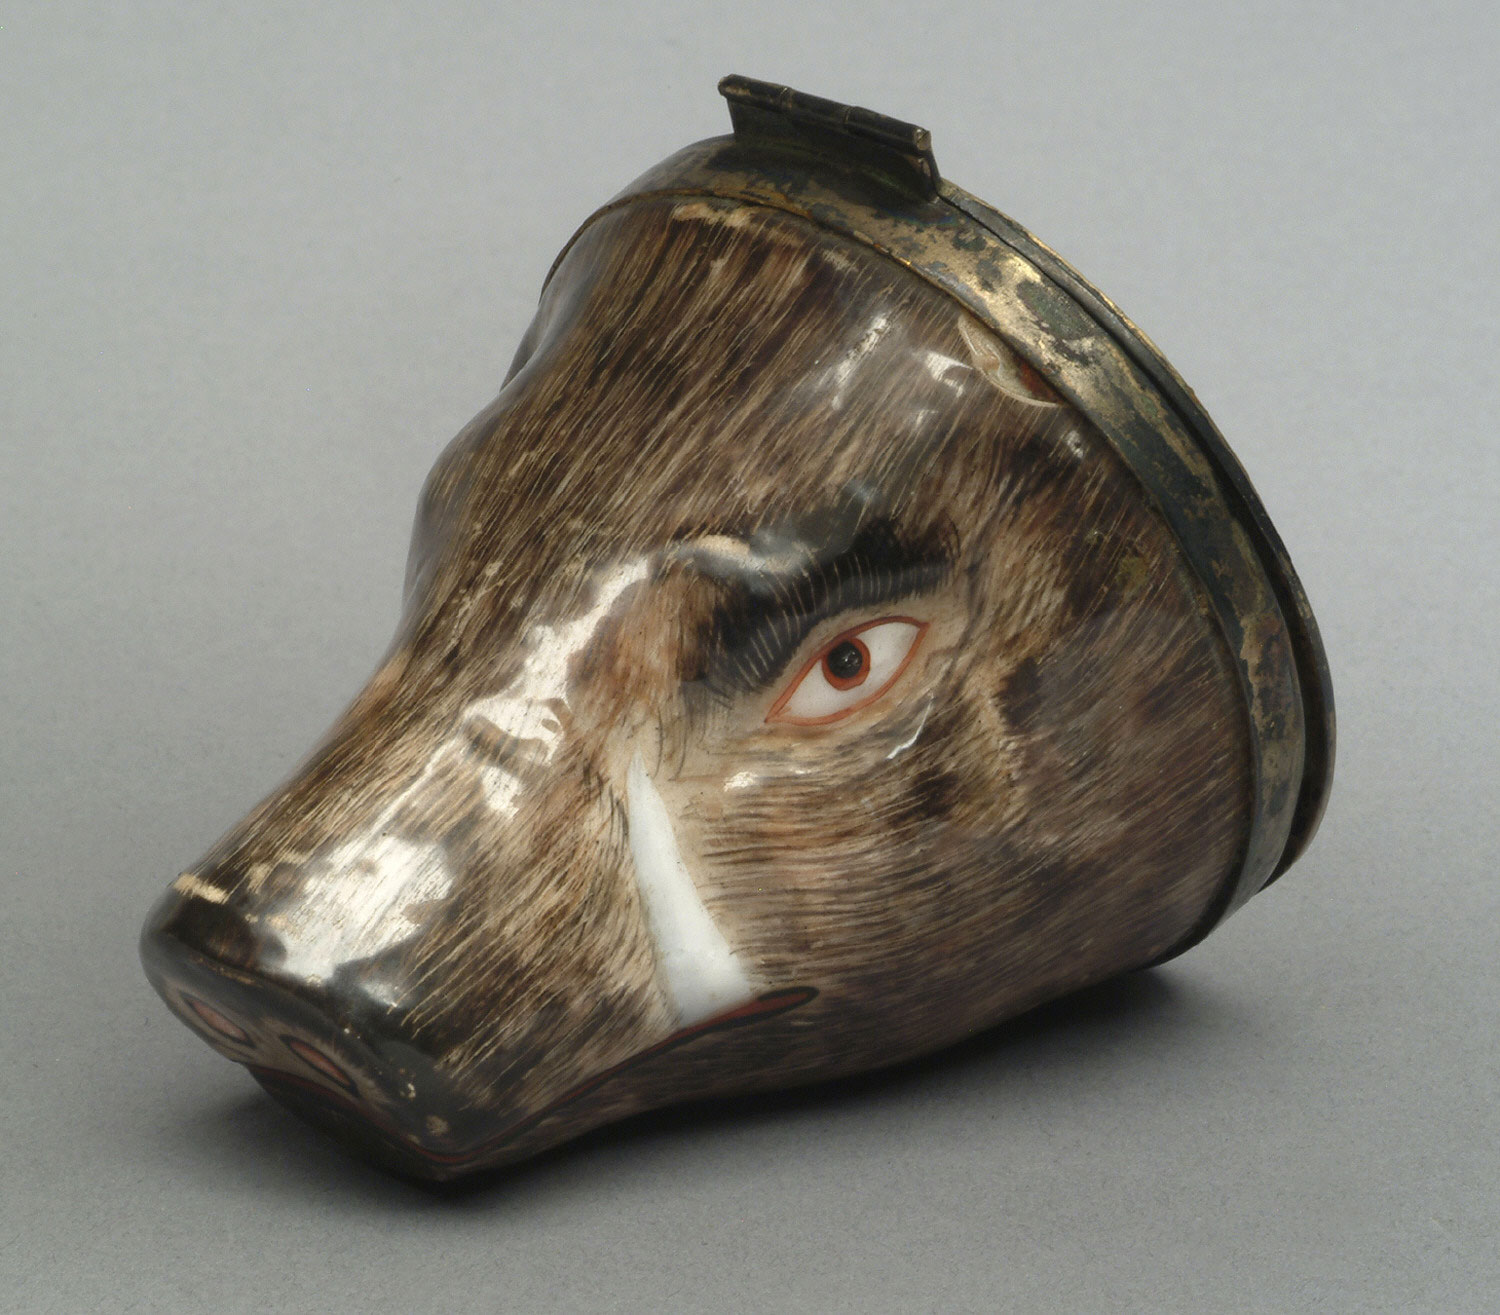 Bonbonnière (Sweets Box) in the Form of a Boar's Head